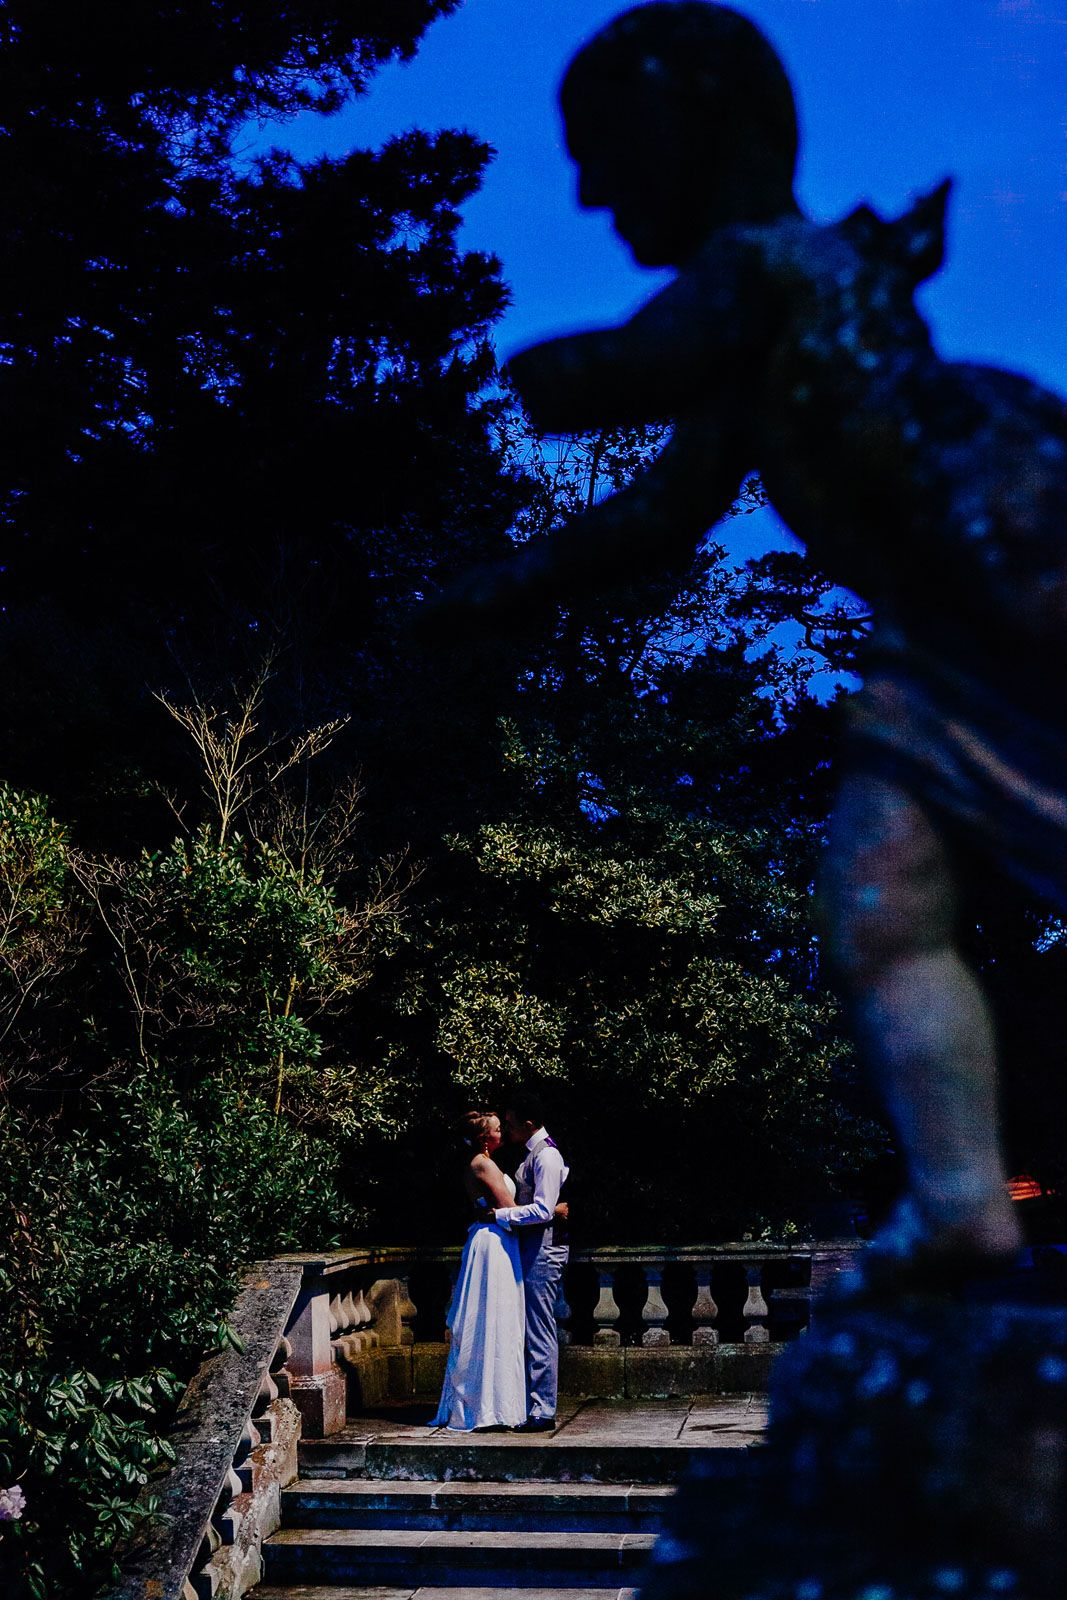 romantic night-time wedding photography by Tuscany destination wedding photographer Elizabeth Armitage